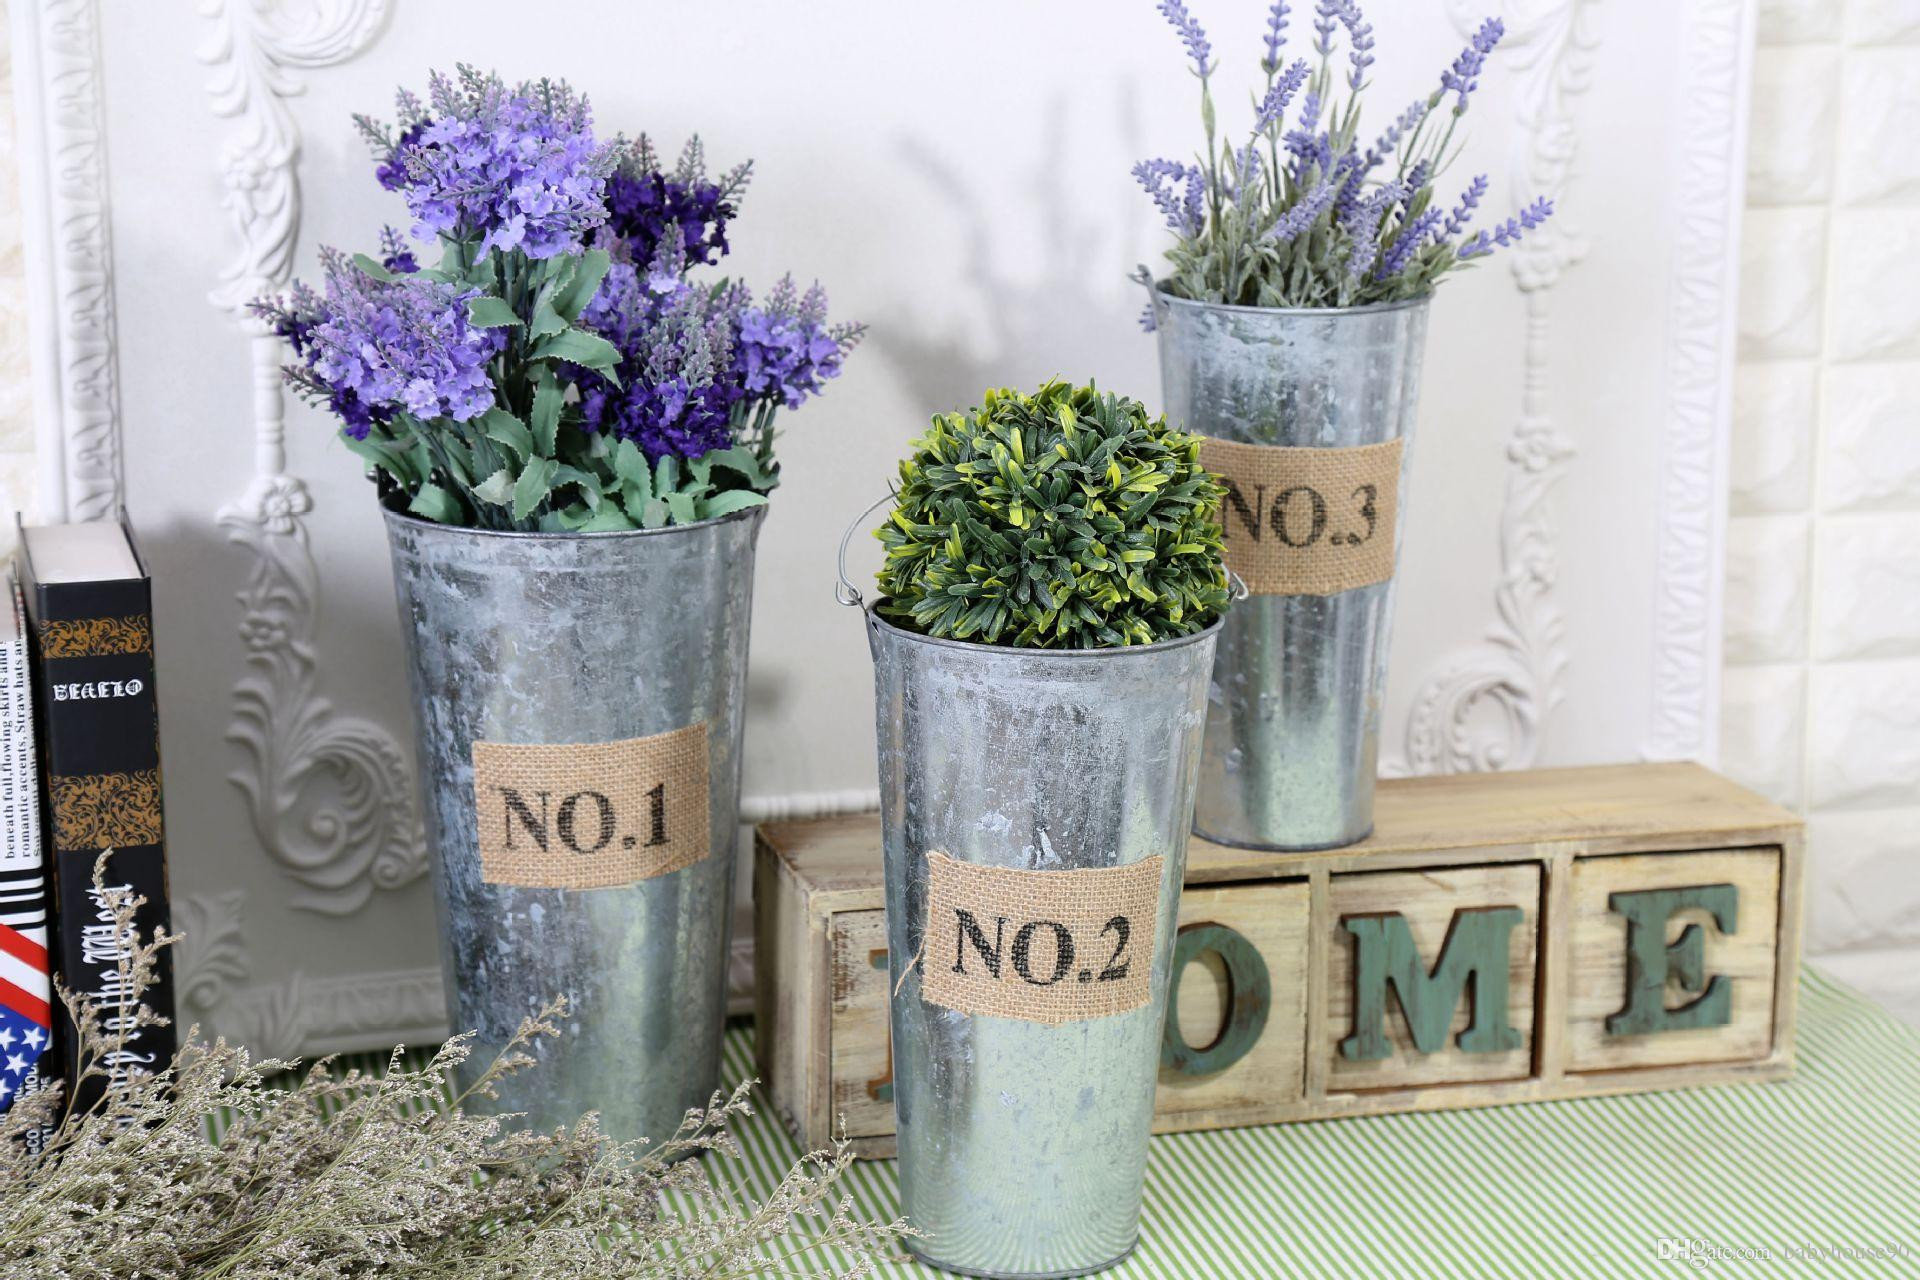 retro vases for sale of 2018 retro metal flowerpot vintage rustic nostalgia pot succulent in retro metal flowerpot vintage rustic nostalgia pot succulent buckets storage desktop container vase creative garden pots